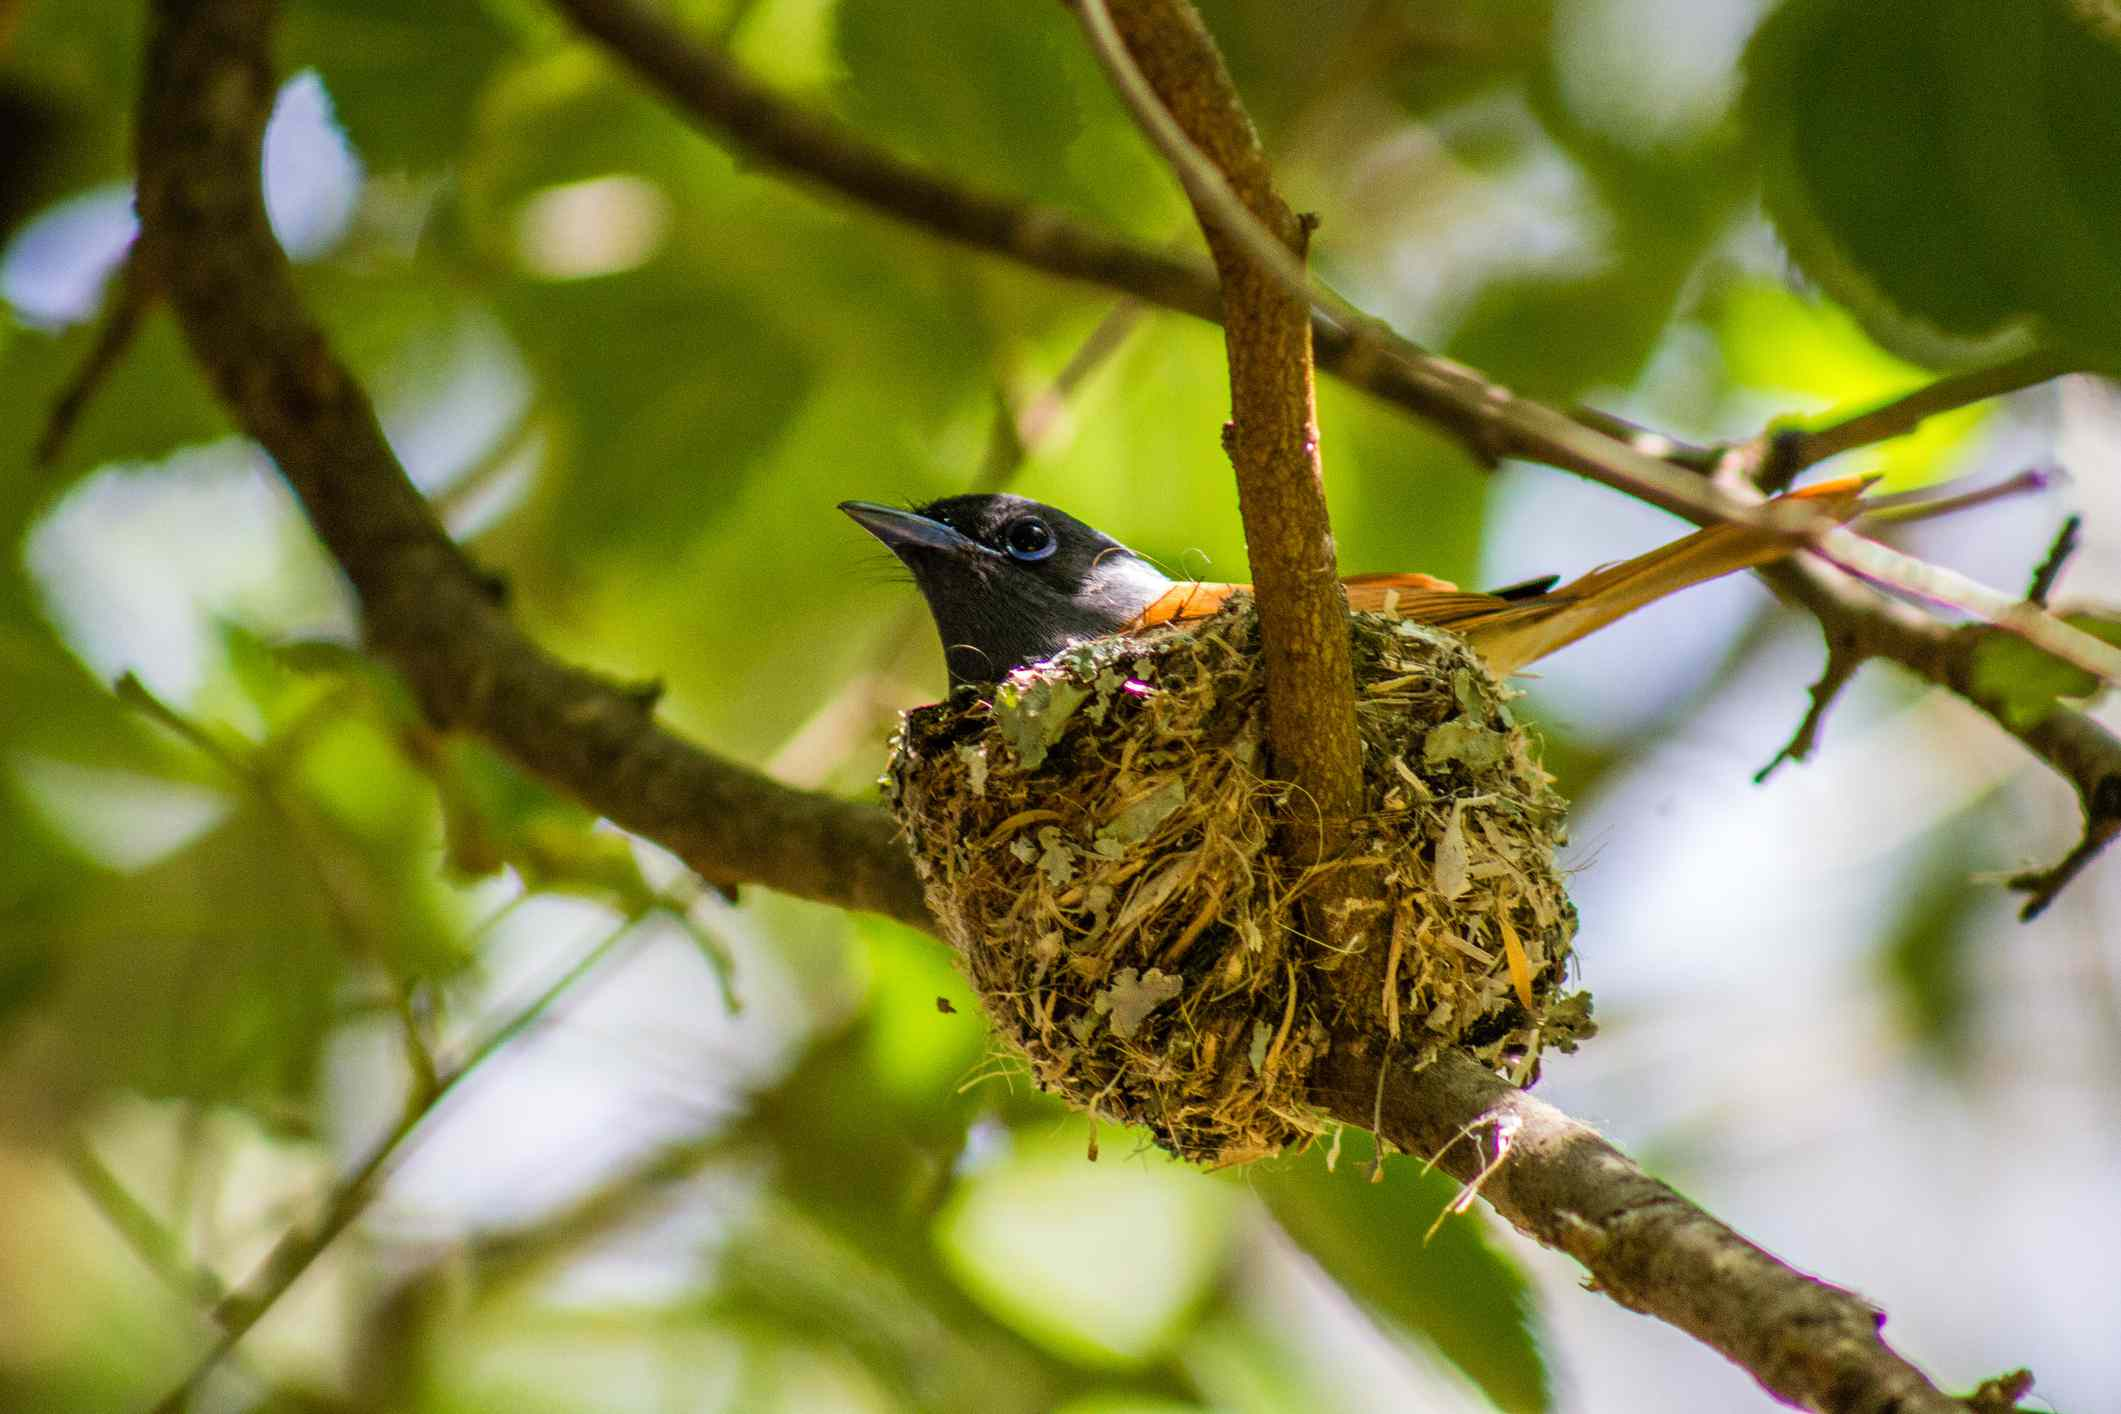 Hummingbird in a nest